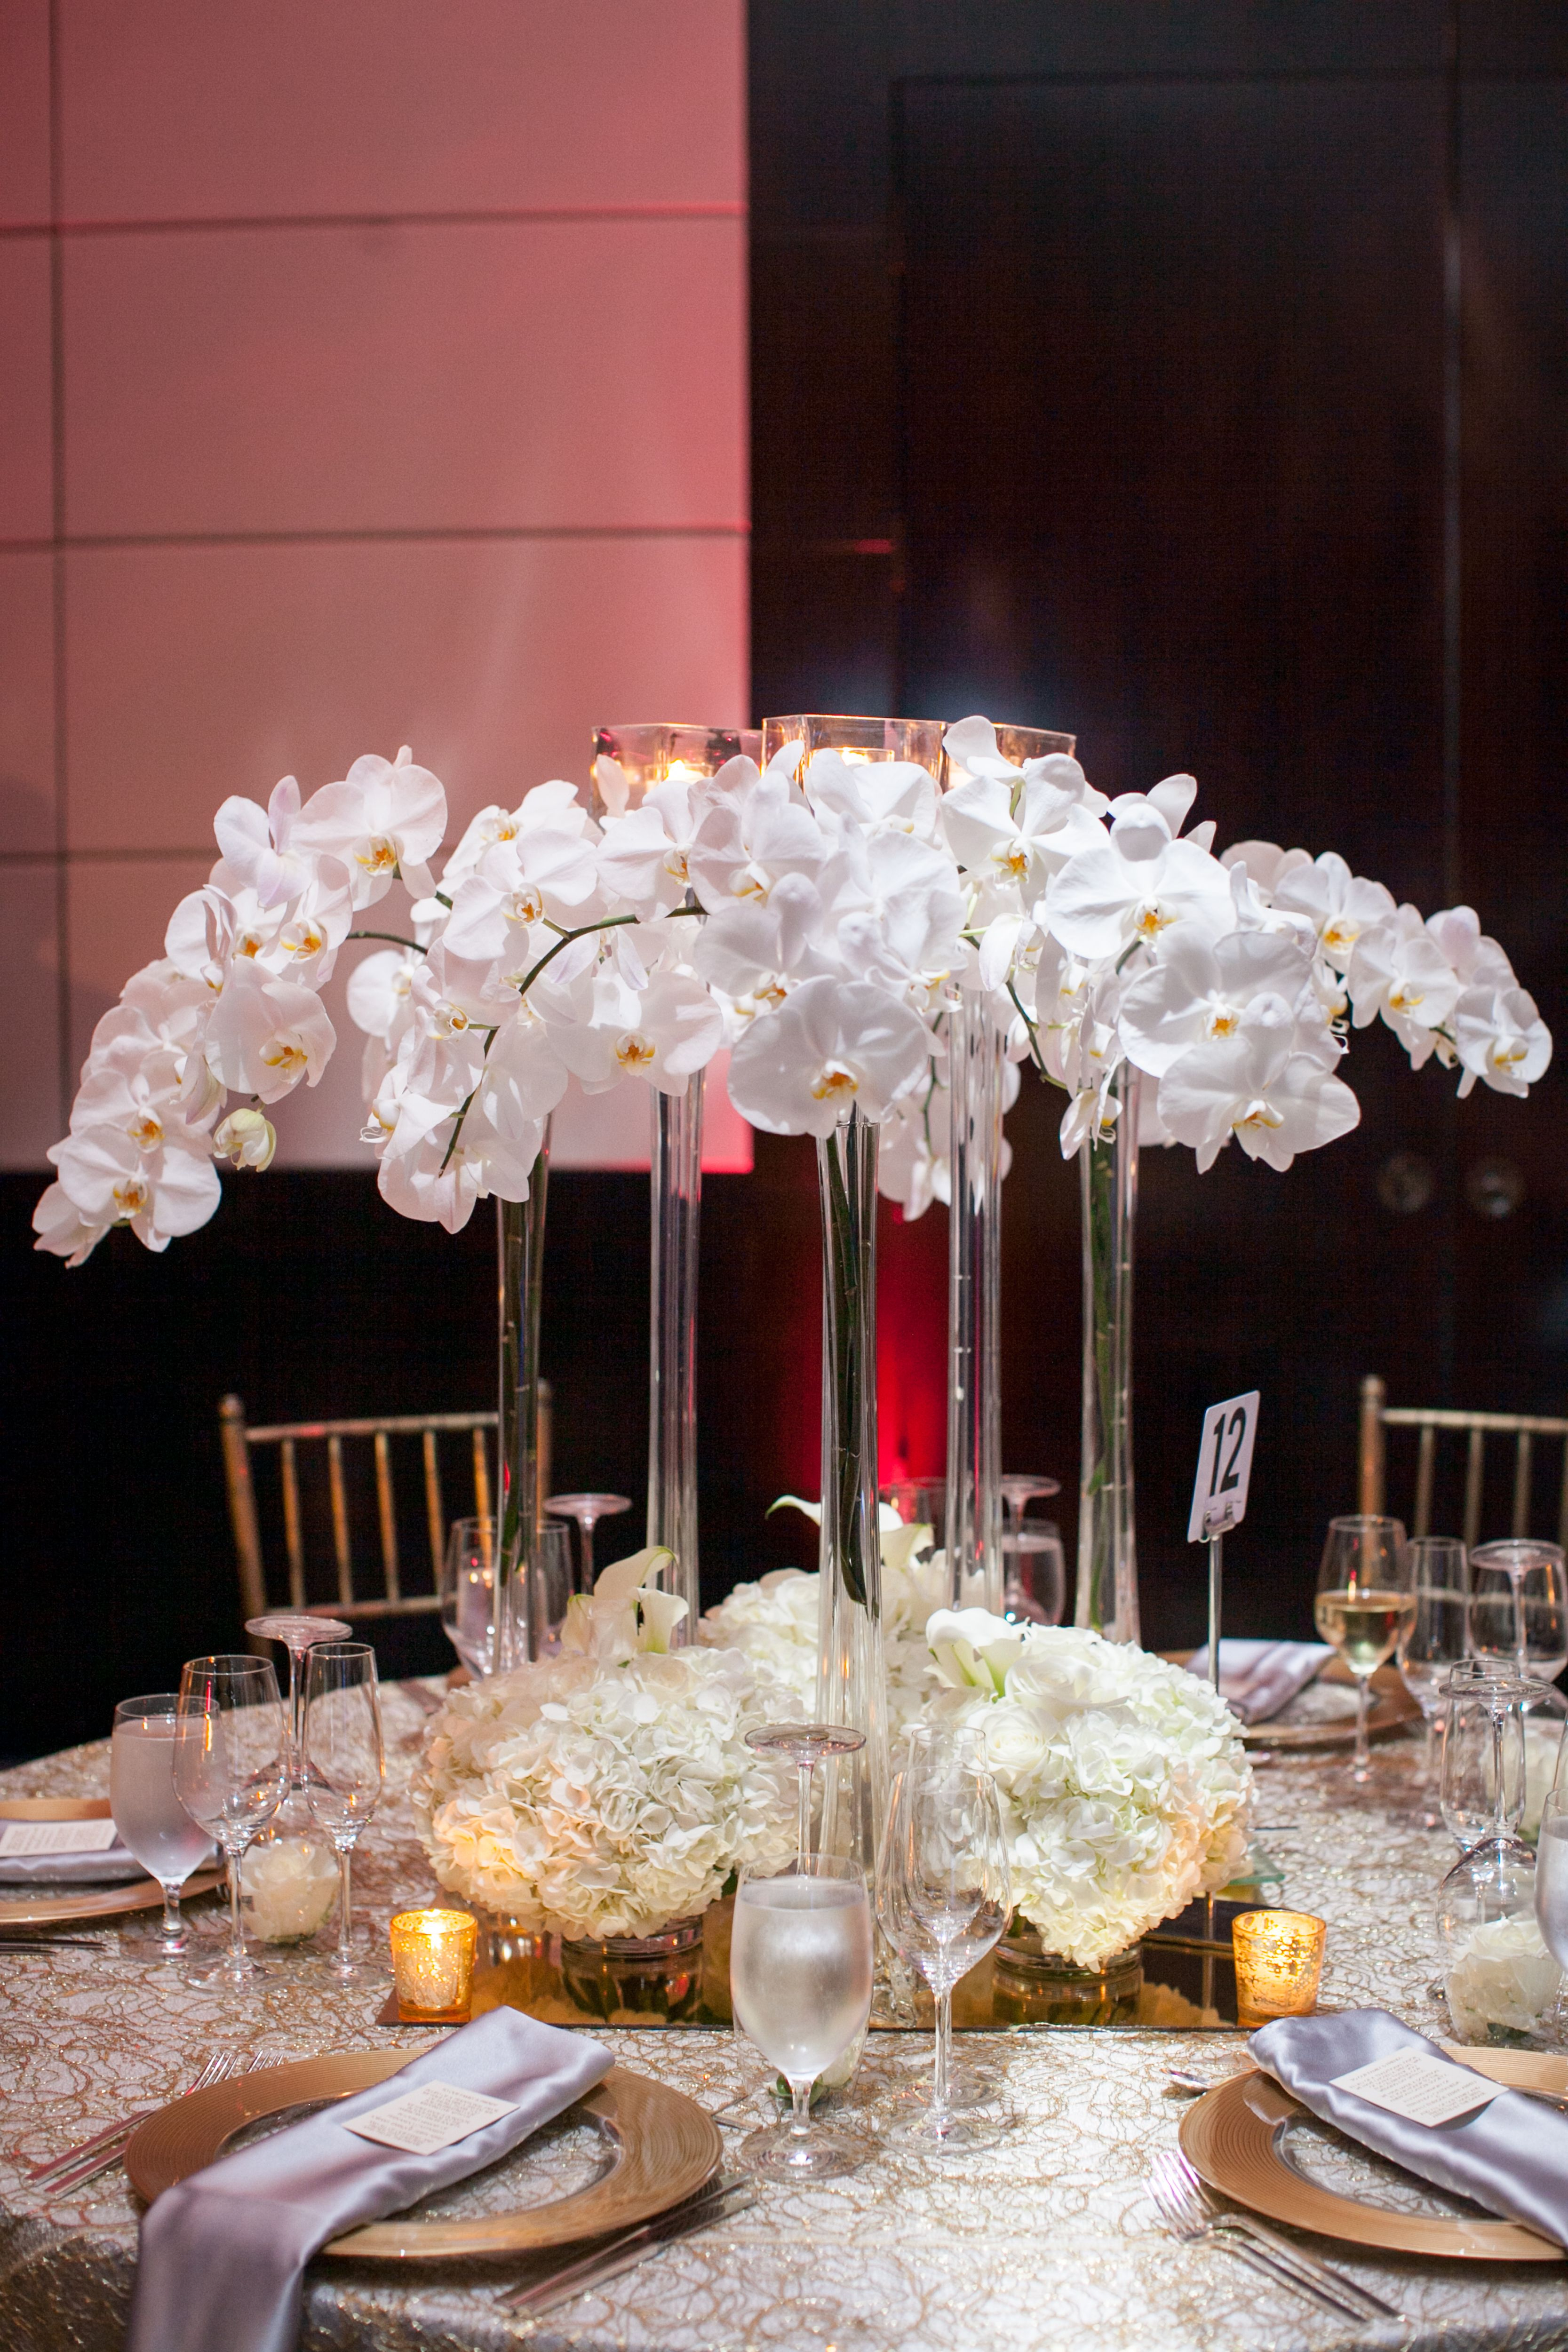 Phalaenopsis Orchids In Tall Thin Vases With Low Lying Floral Accents Designed By Adam Leffel Productions